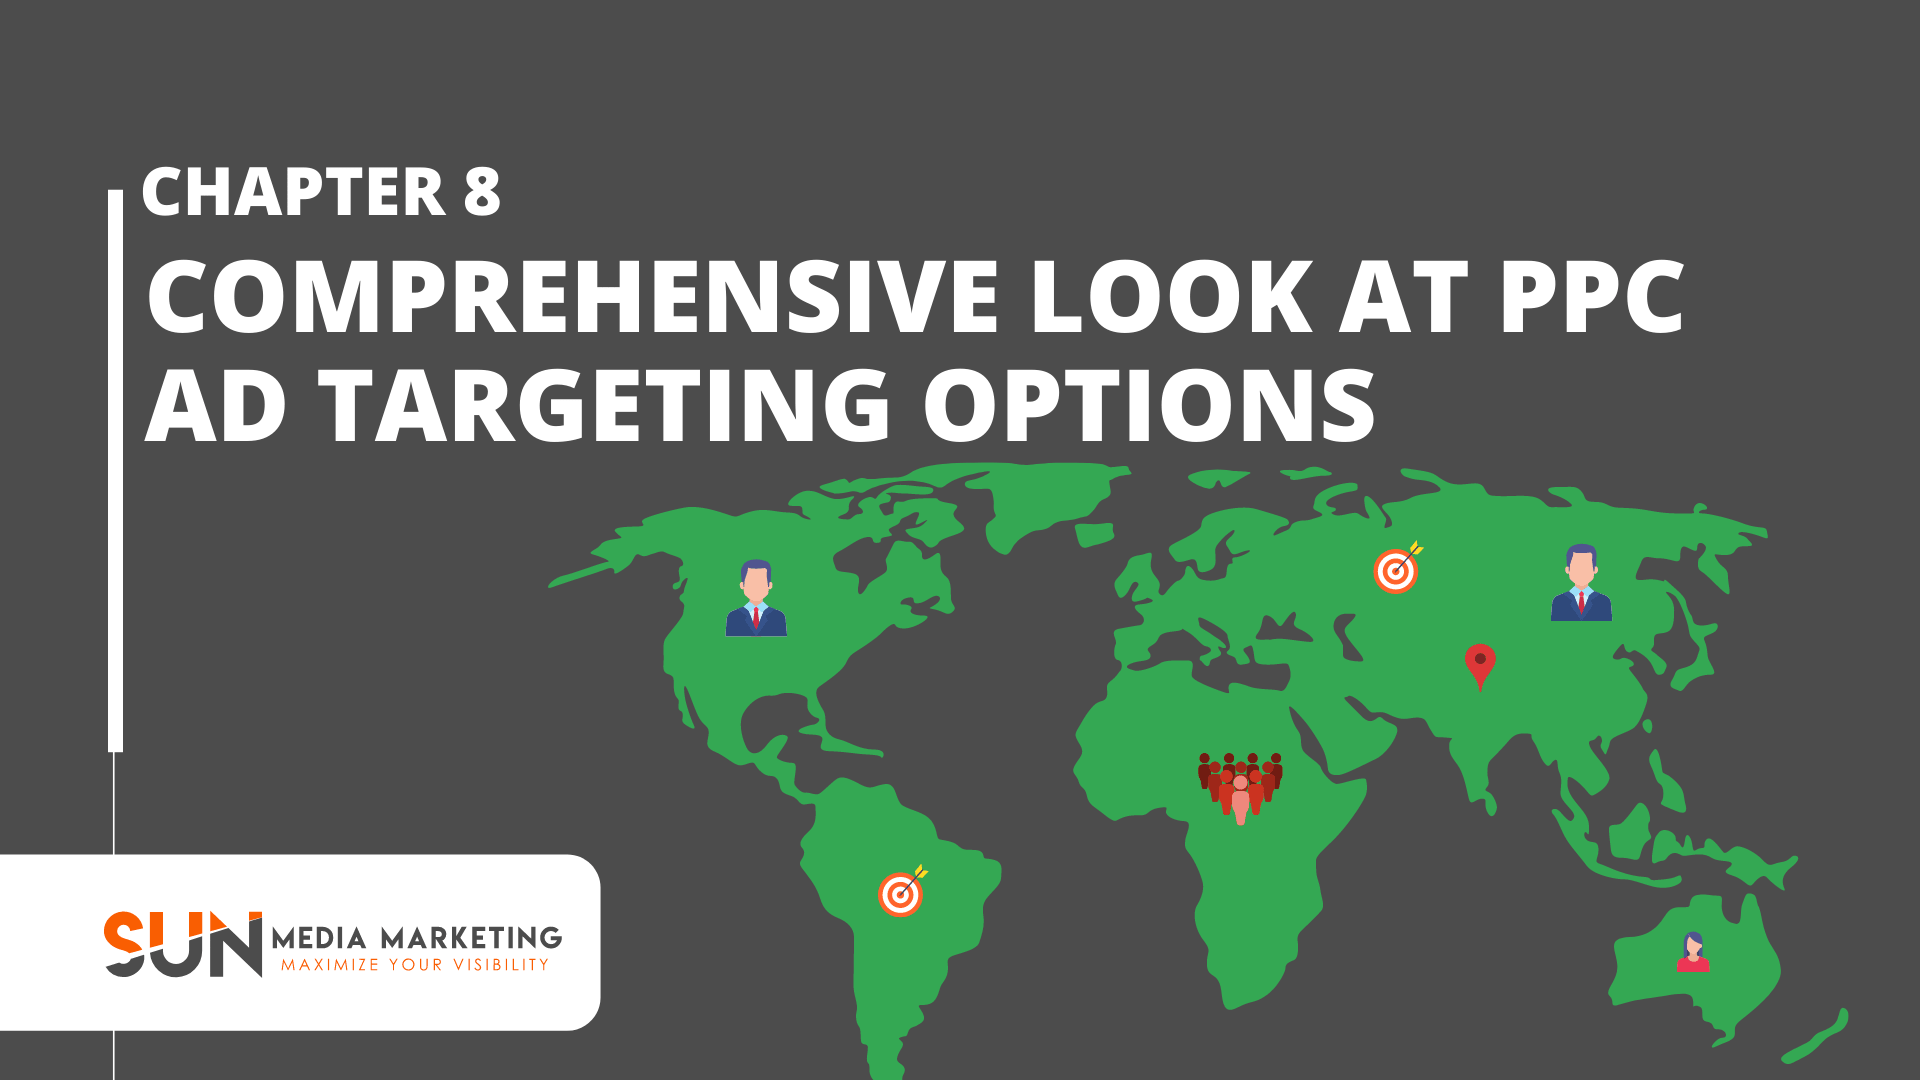 A Comprehensive Look at PPC Ad Targeting Options